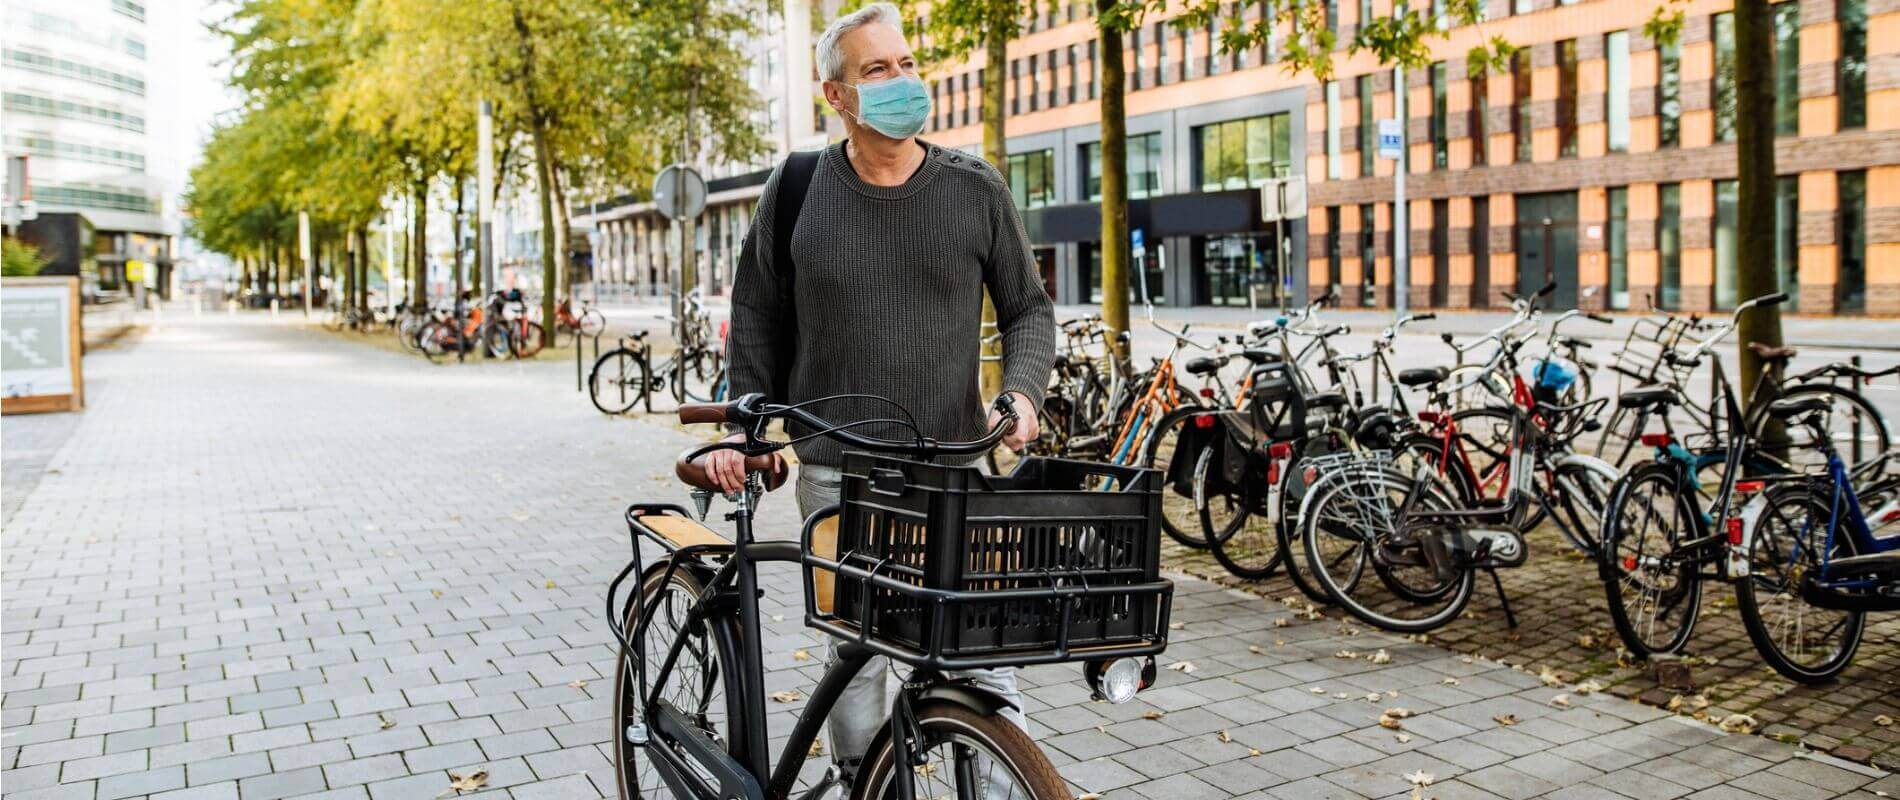 Rethinking Urban Mobility for the Post-Covid City | bee smart city